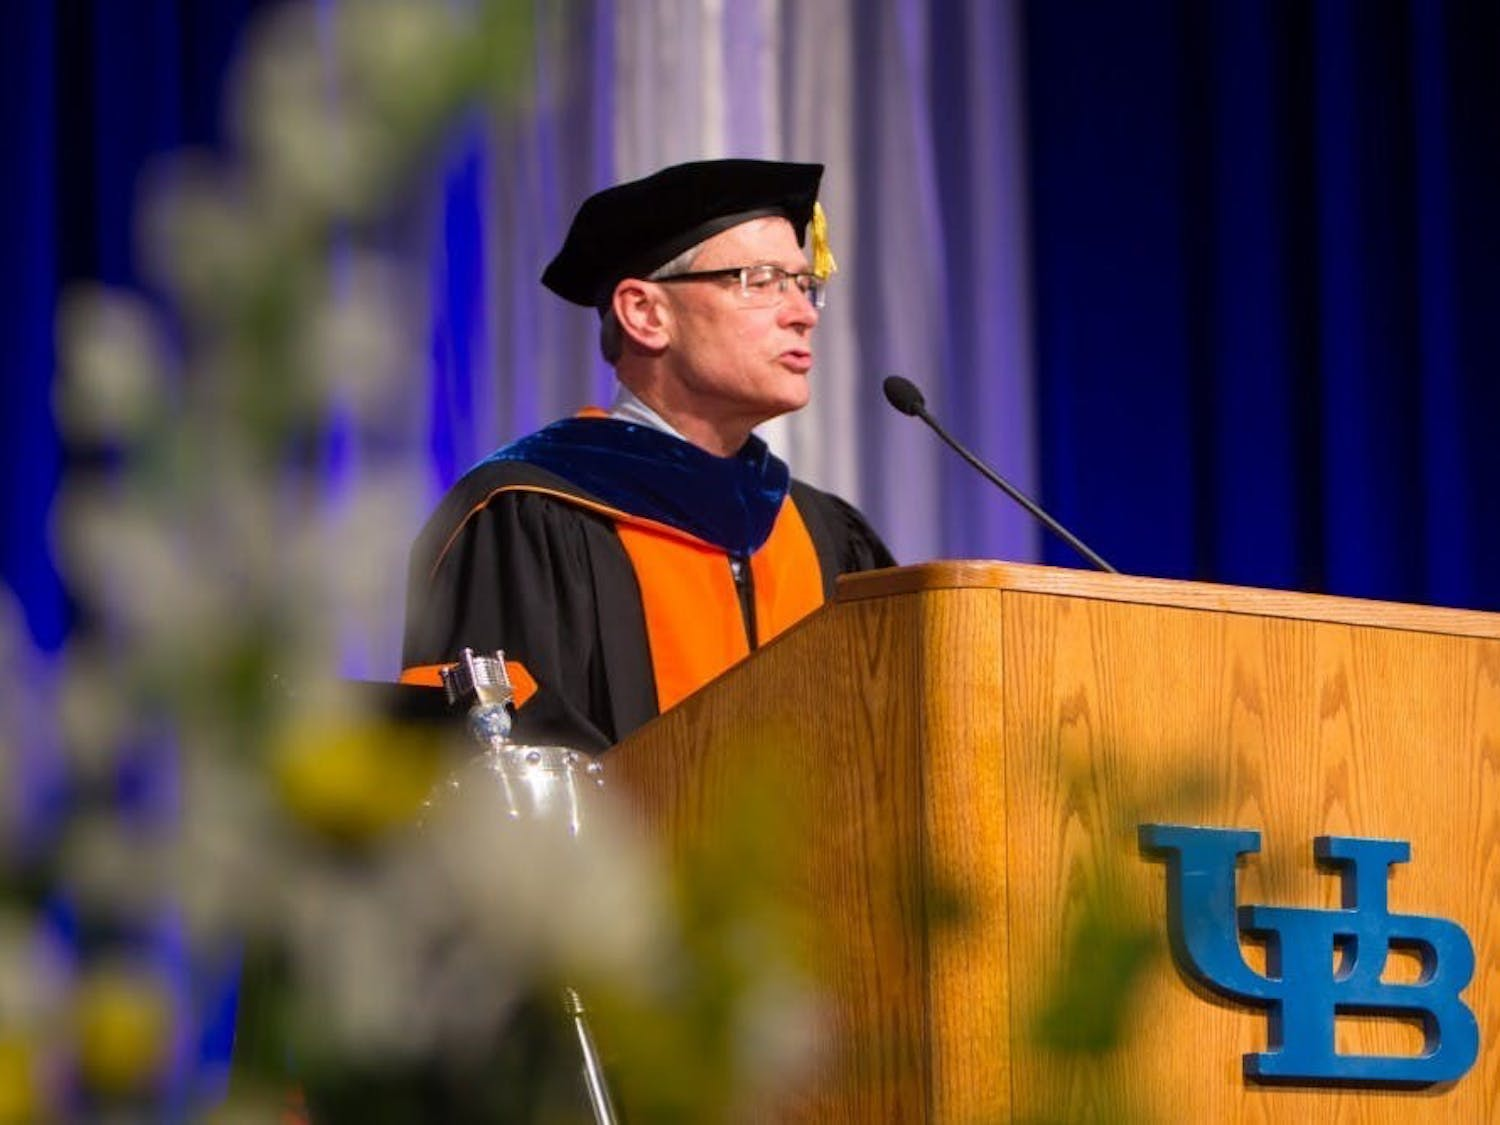 Former UB provost Charles Zukoski speaks to graduates at the university's 2018 commencement ceremony.